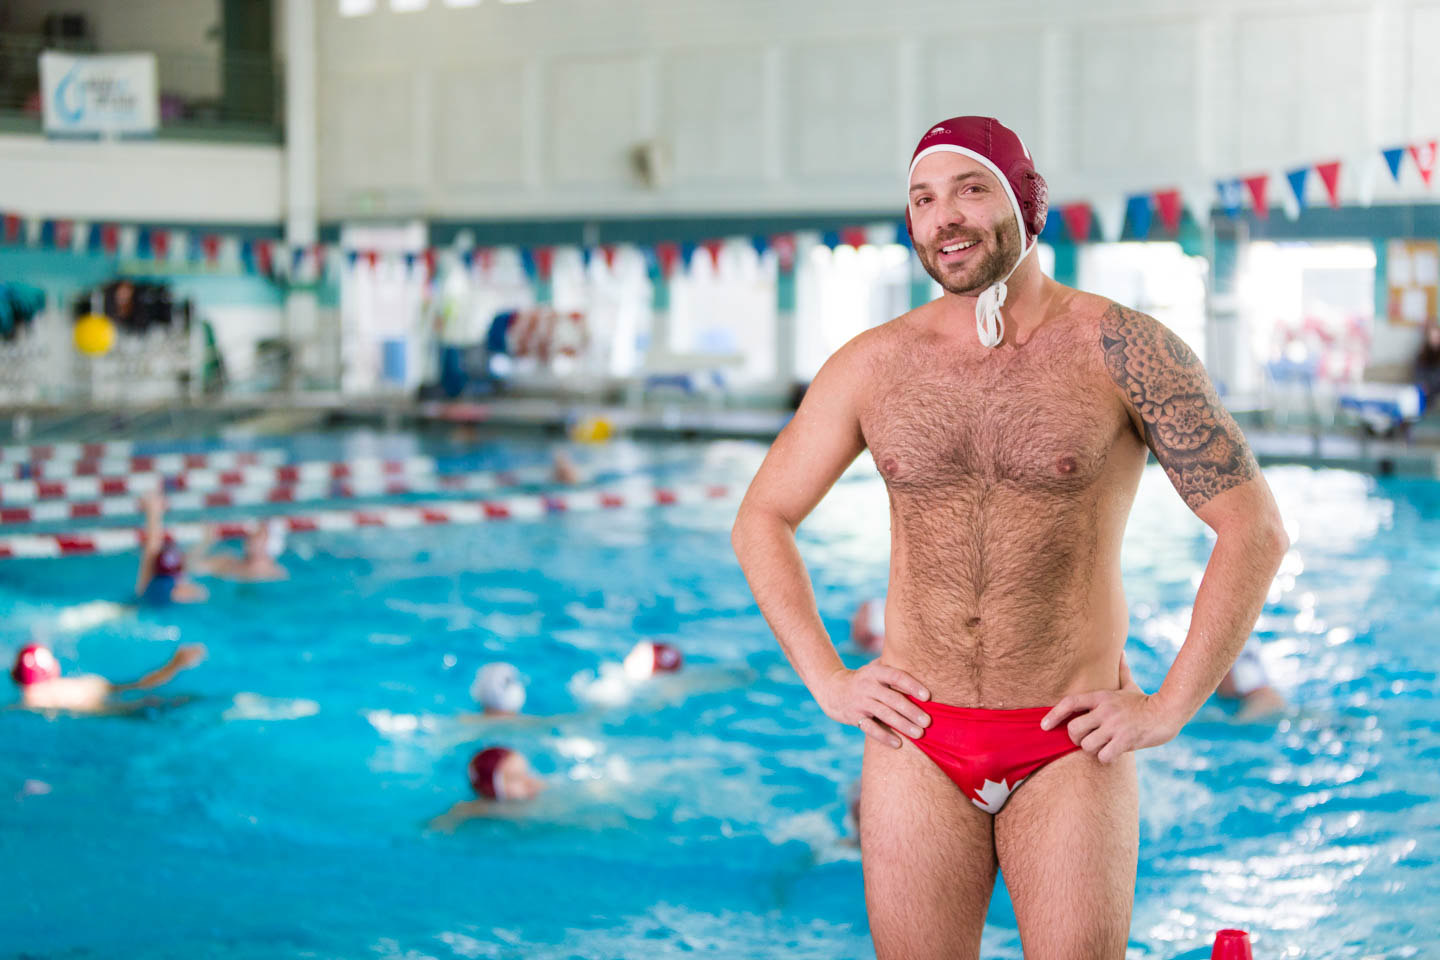 A Canadian water polo player came to the Ski-n-Swim